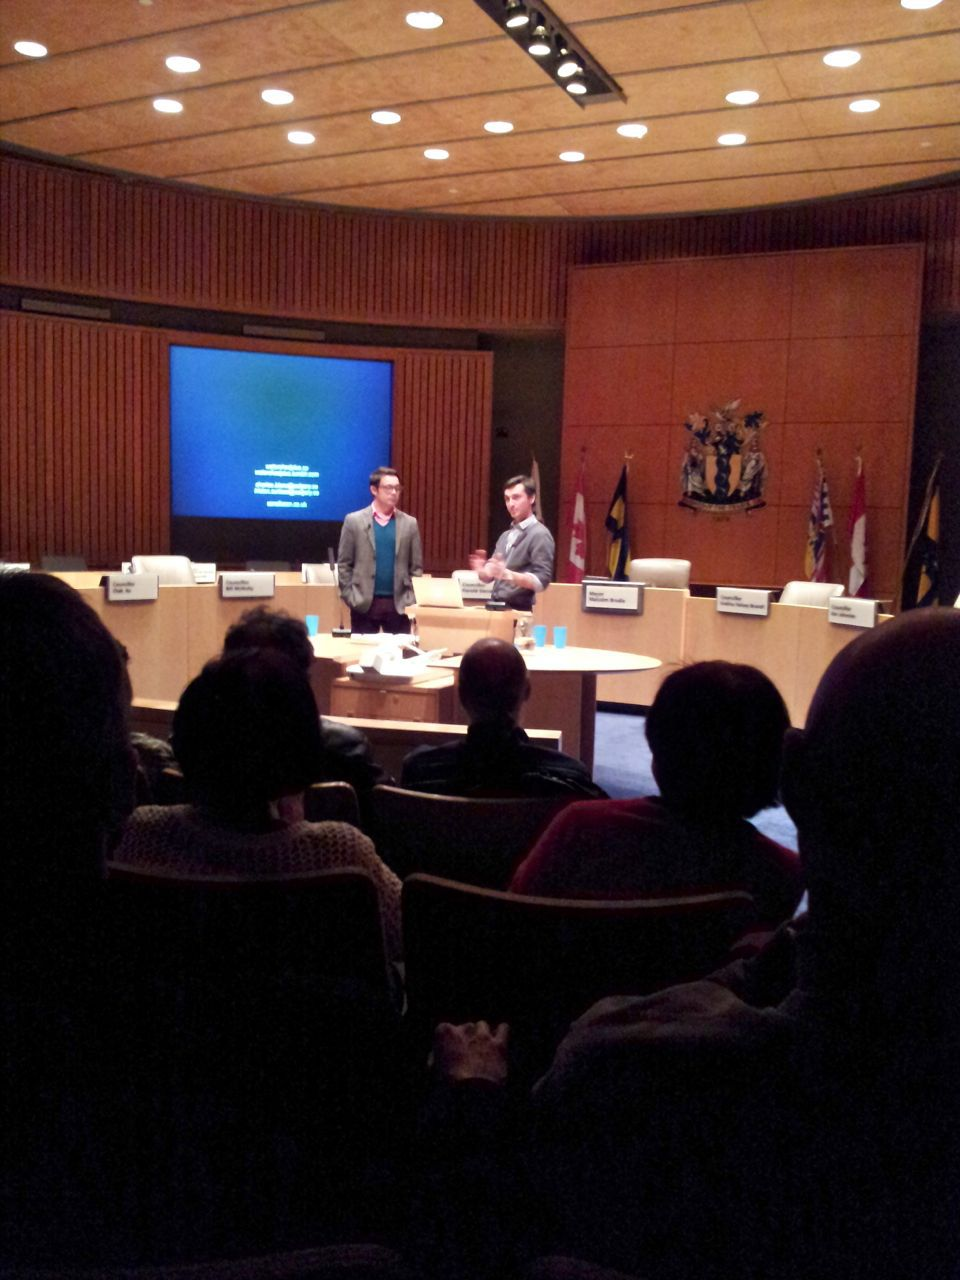 Sans Facon presenting at Richmond City Hall